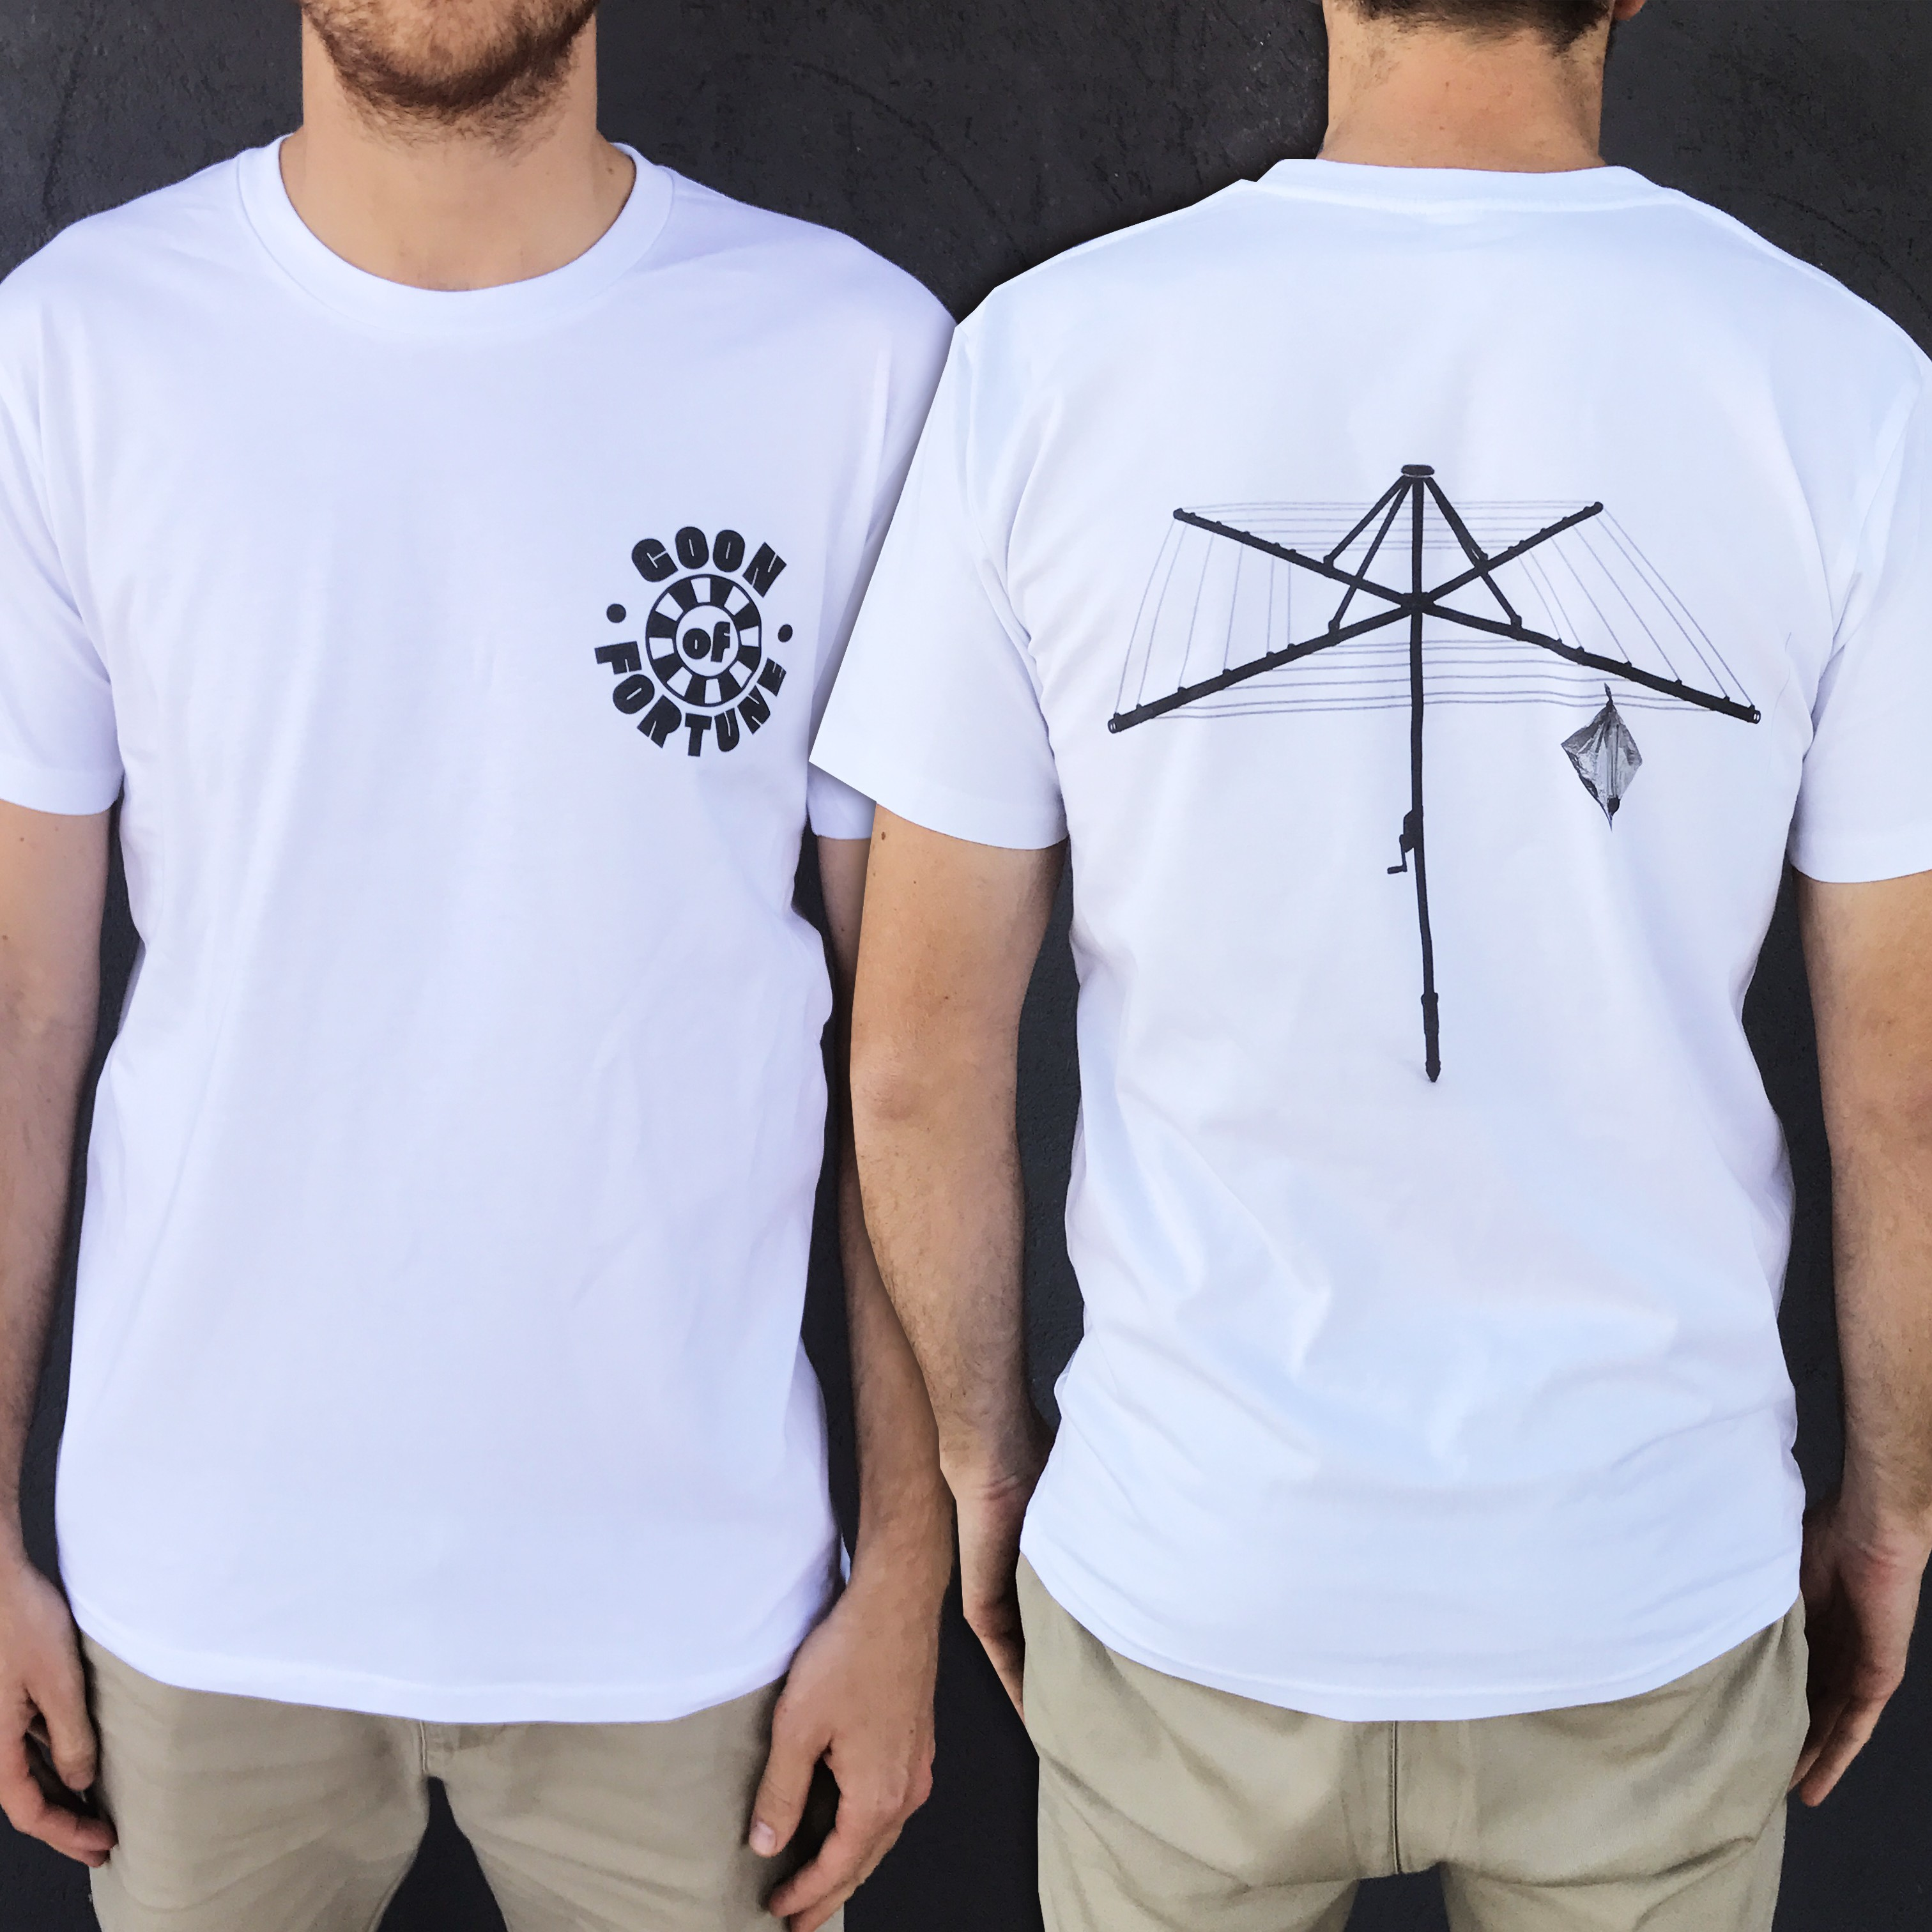 GOON OF FORTUNE FRONT AND BACK WHITE TEE